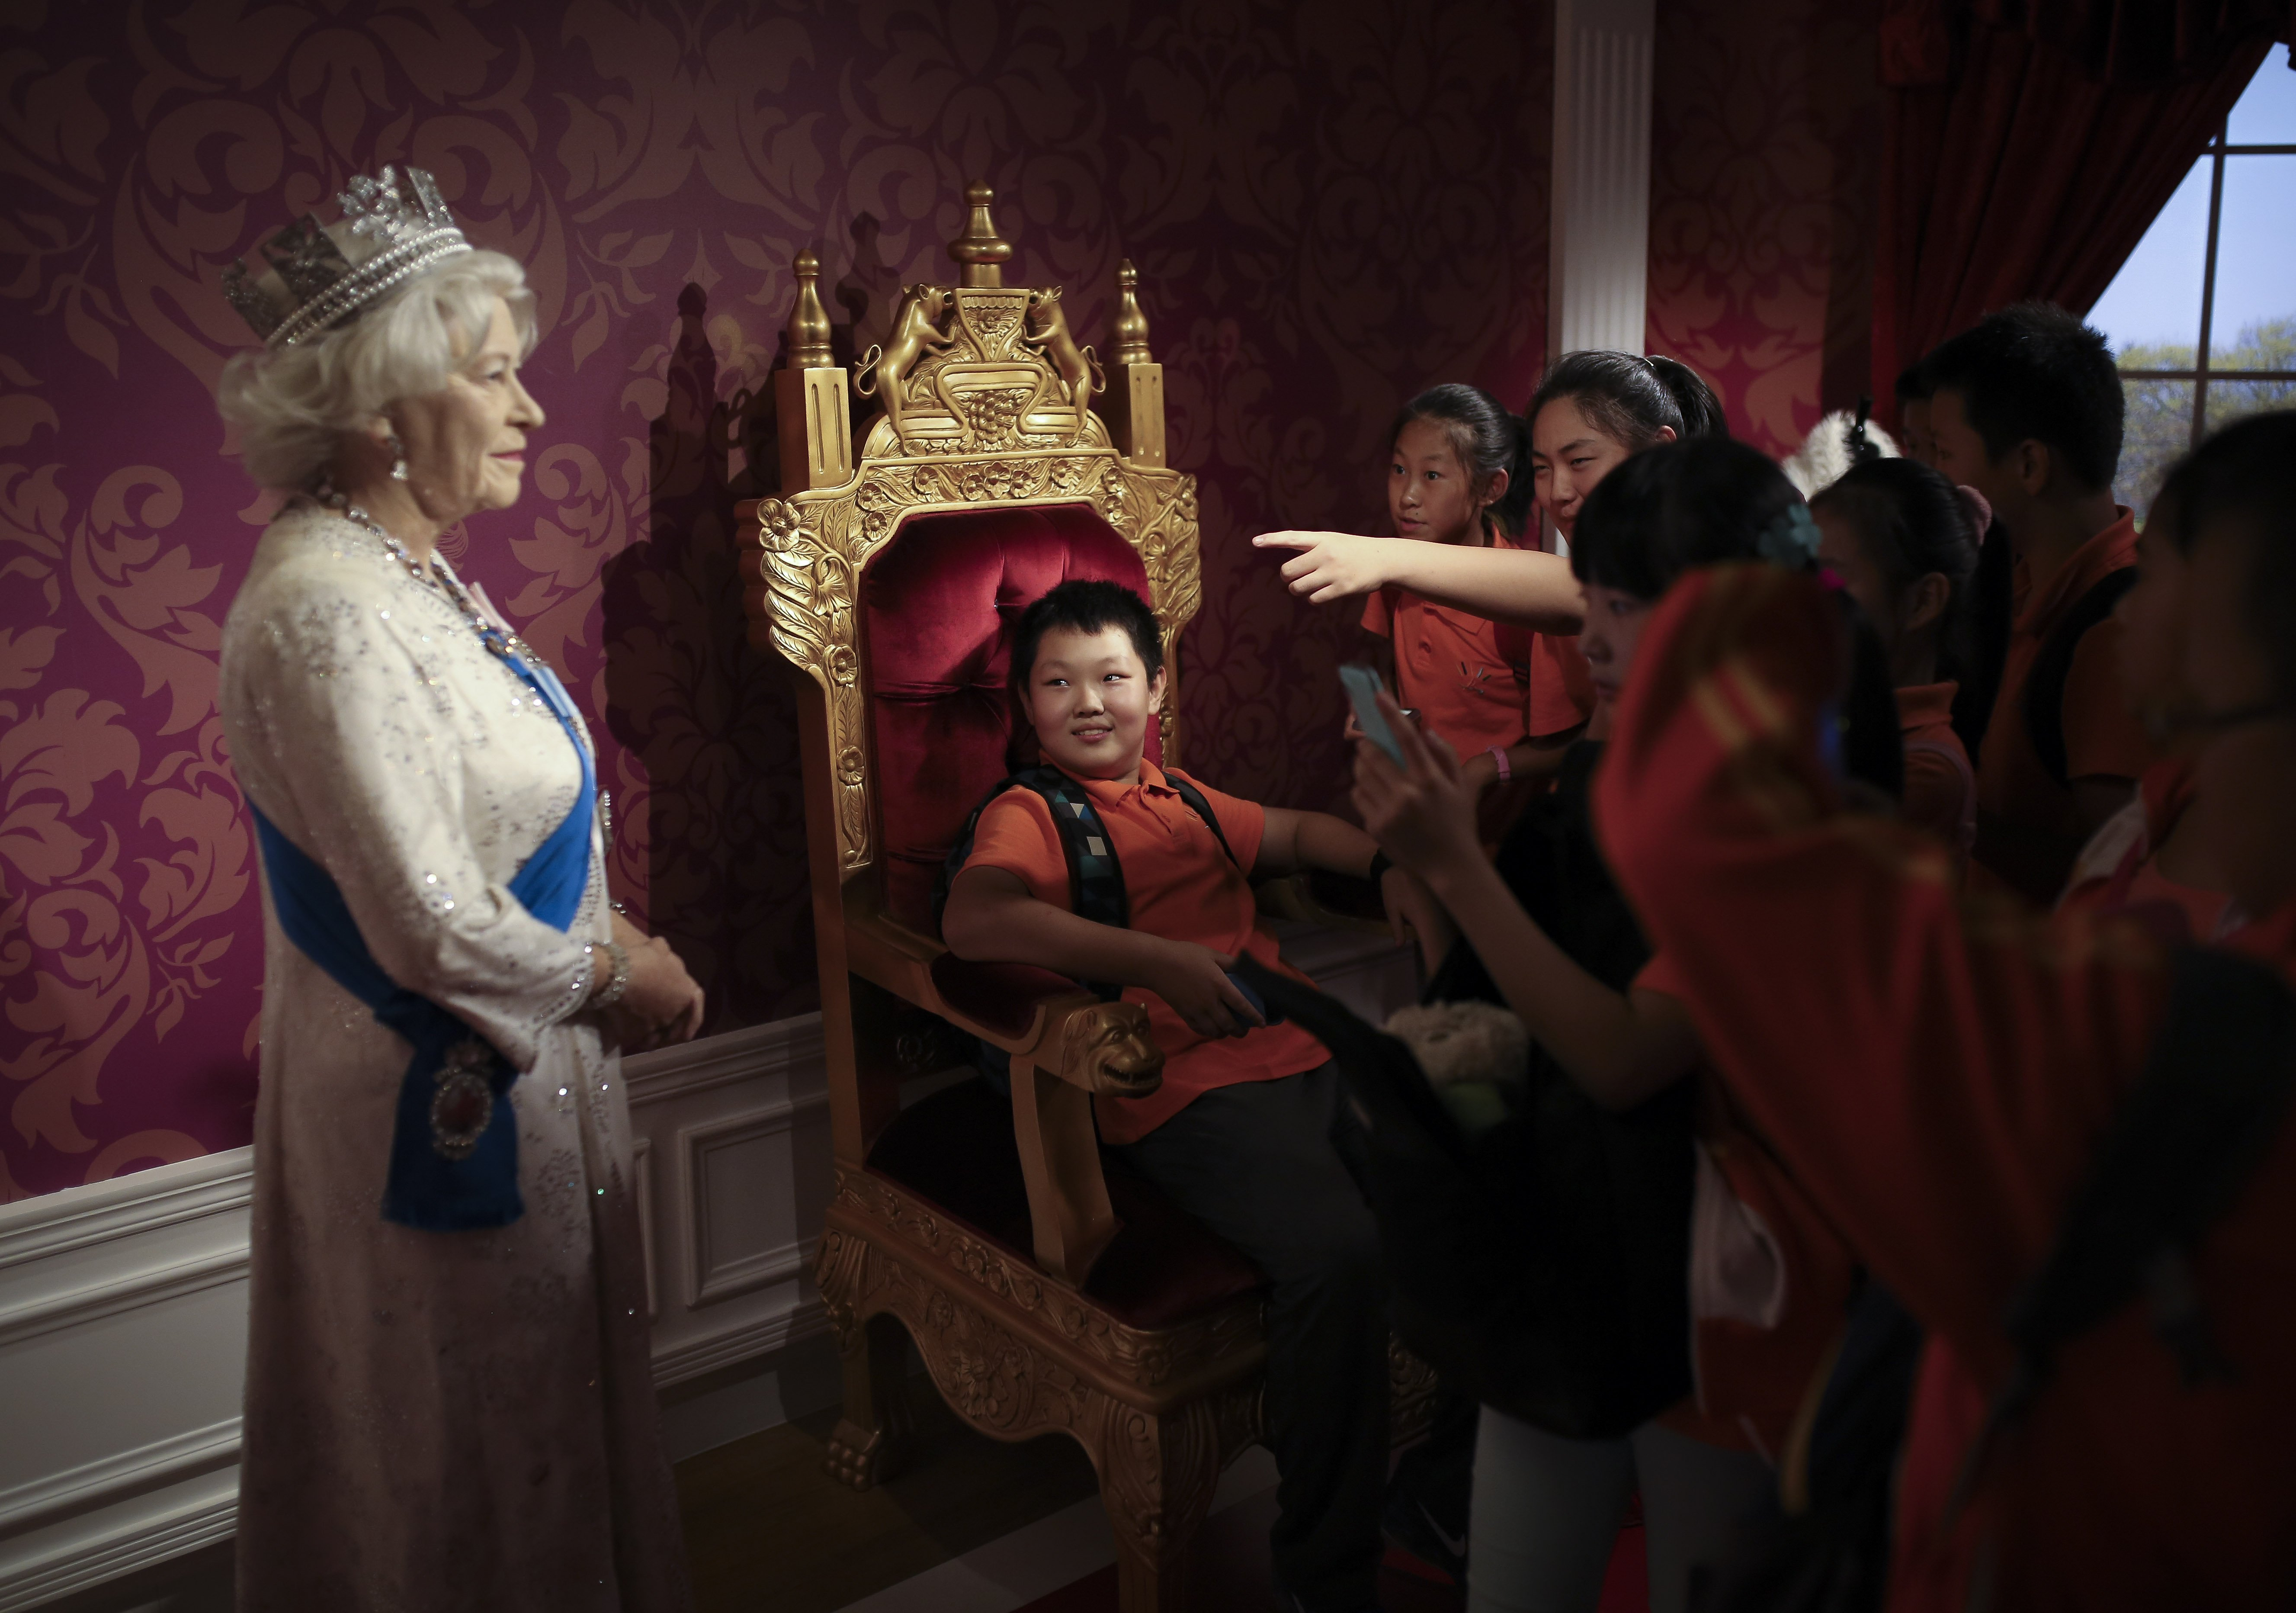 A student sitting on a mock-up of the royalty chair, looks at a wax figure of Britain's Queen Elizabeth II, while others take souvenir photos, at the Madame Tussauds Museum in Beijing on Sept. 19, 2014.